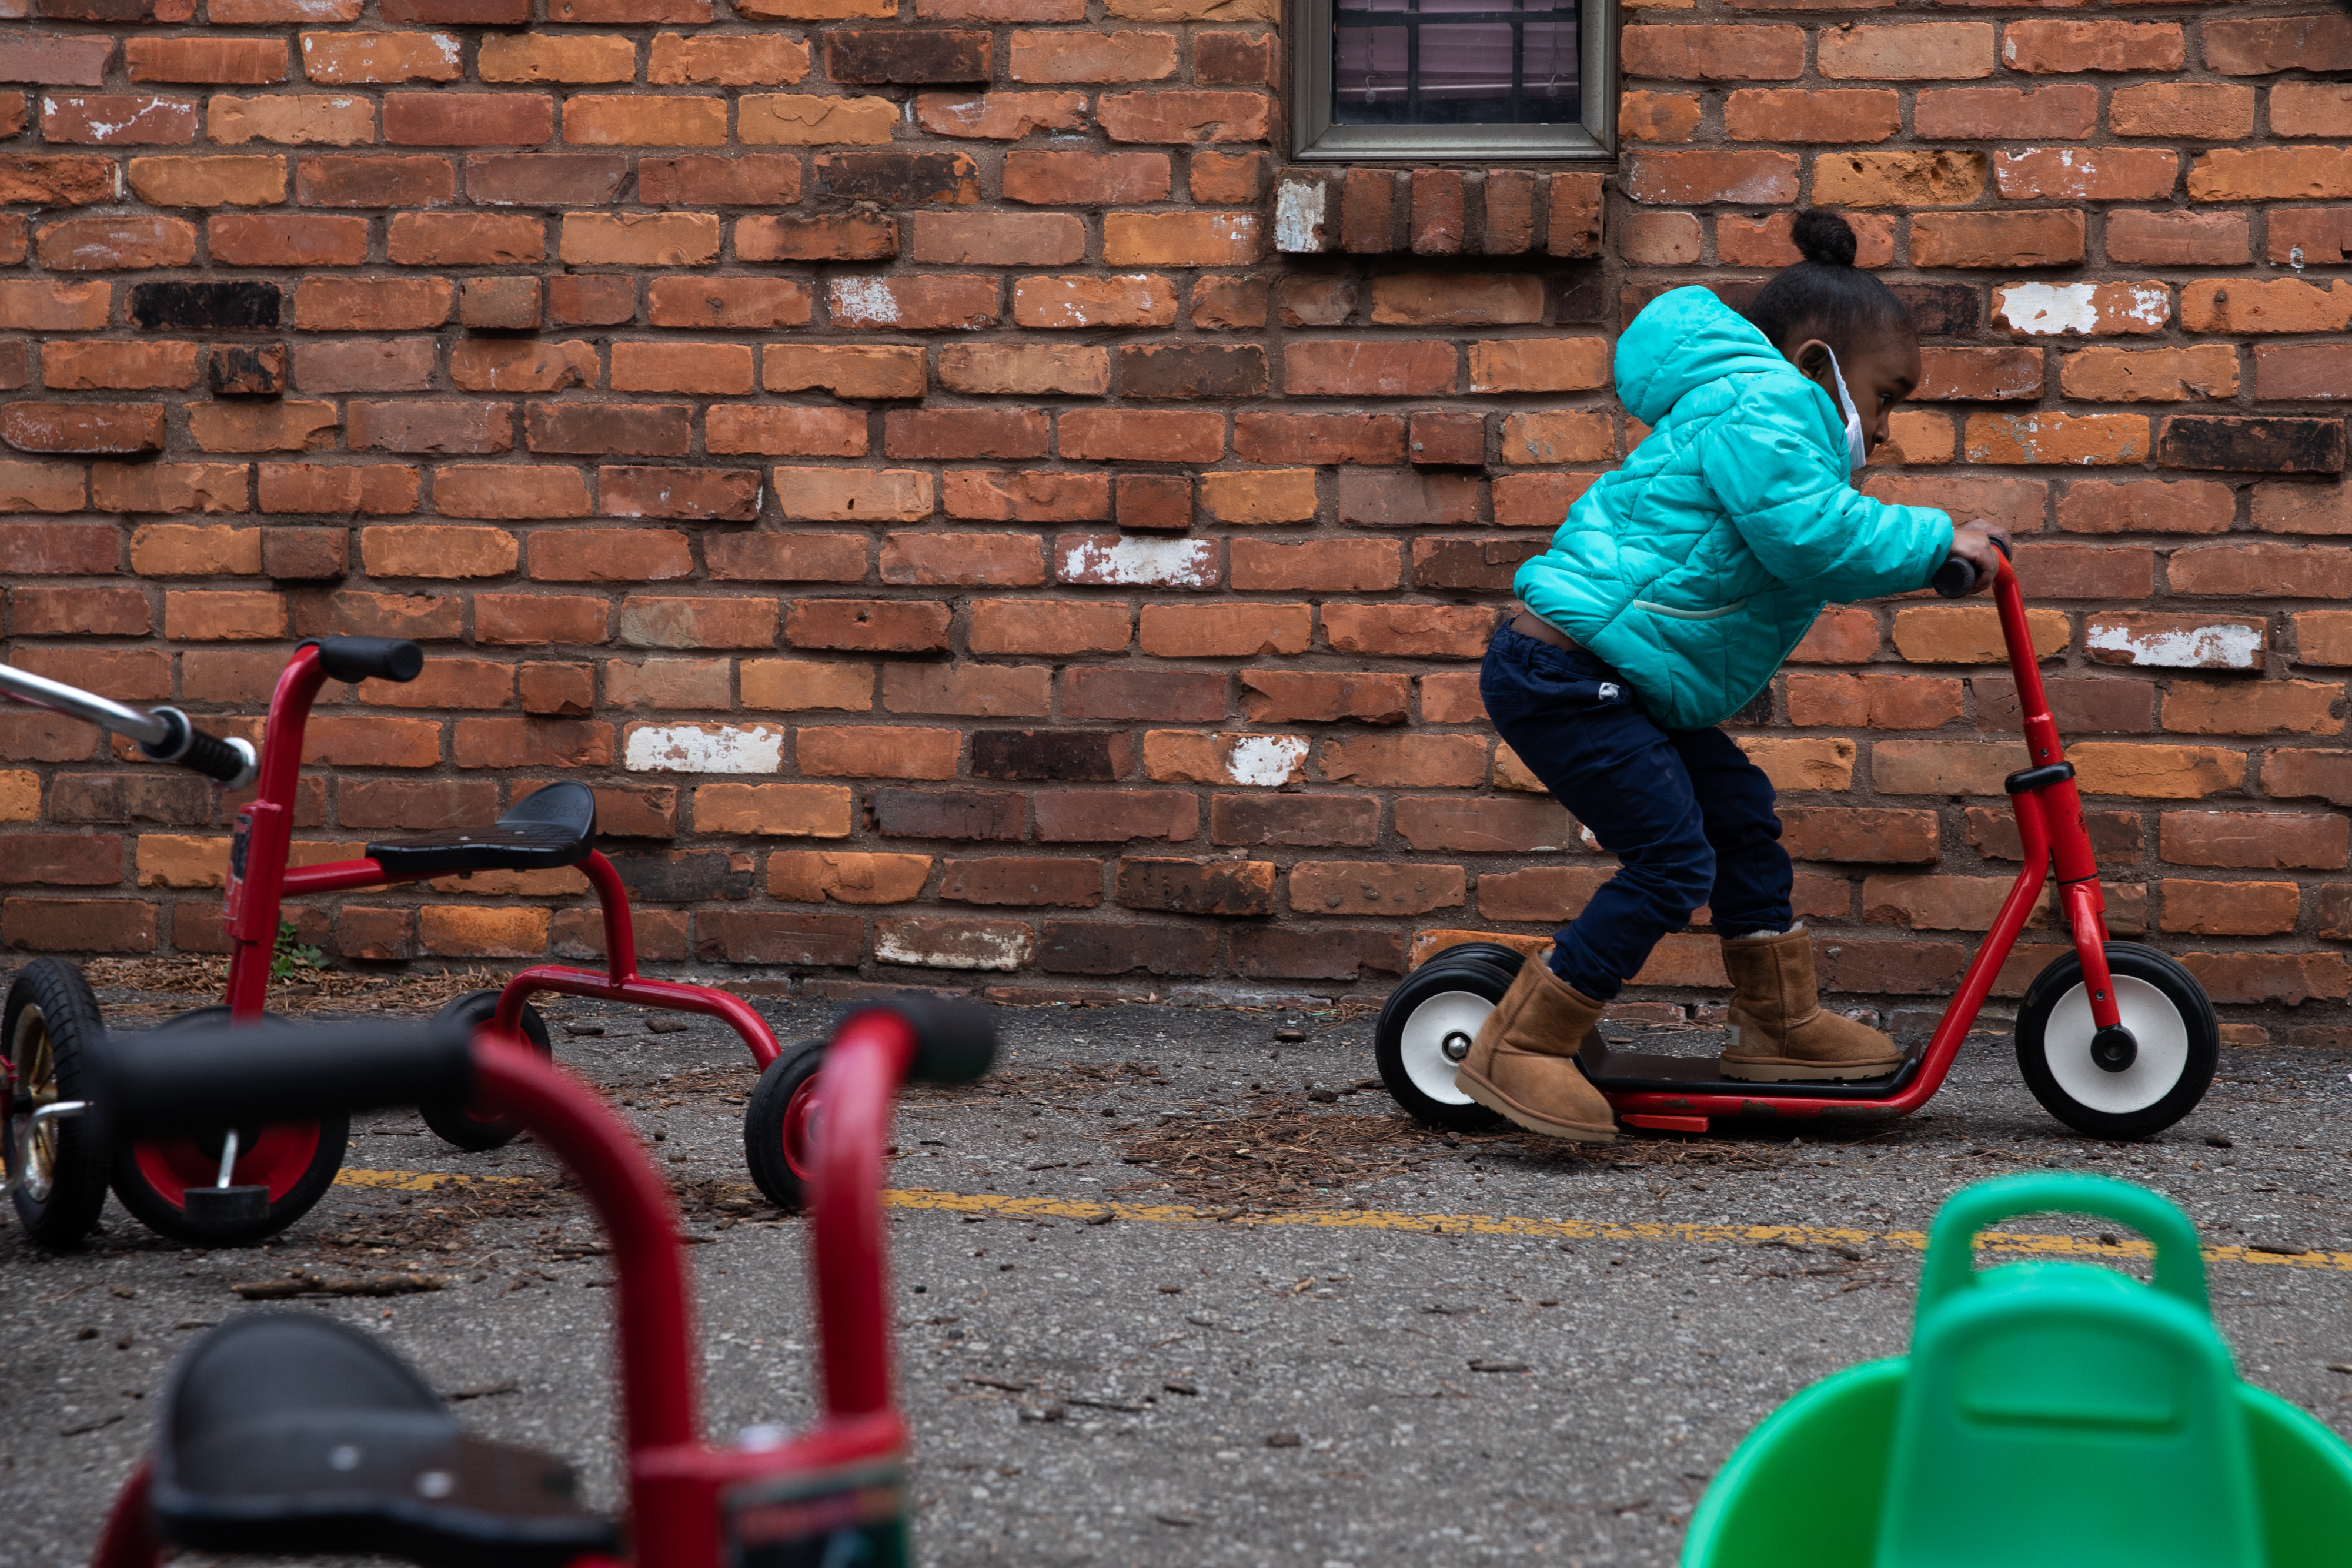 Payton Watson rides around on a scooter as the preschoolers play outside at Little Scholars child care center in Detroit, Michigan, U.S., on Thursday April 1, 2021.